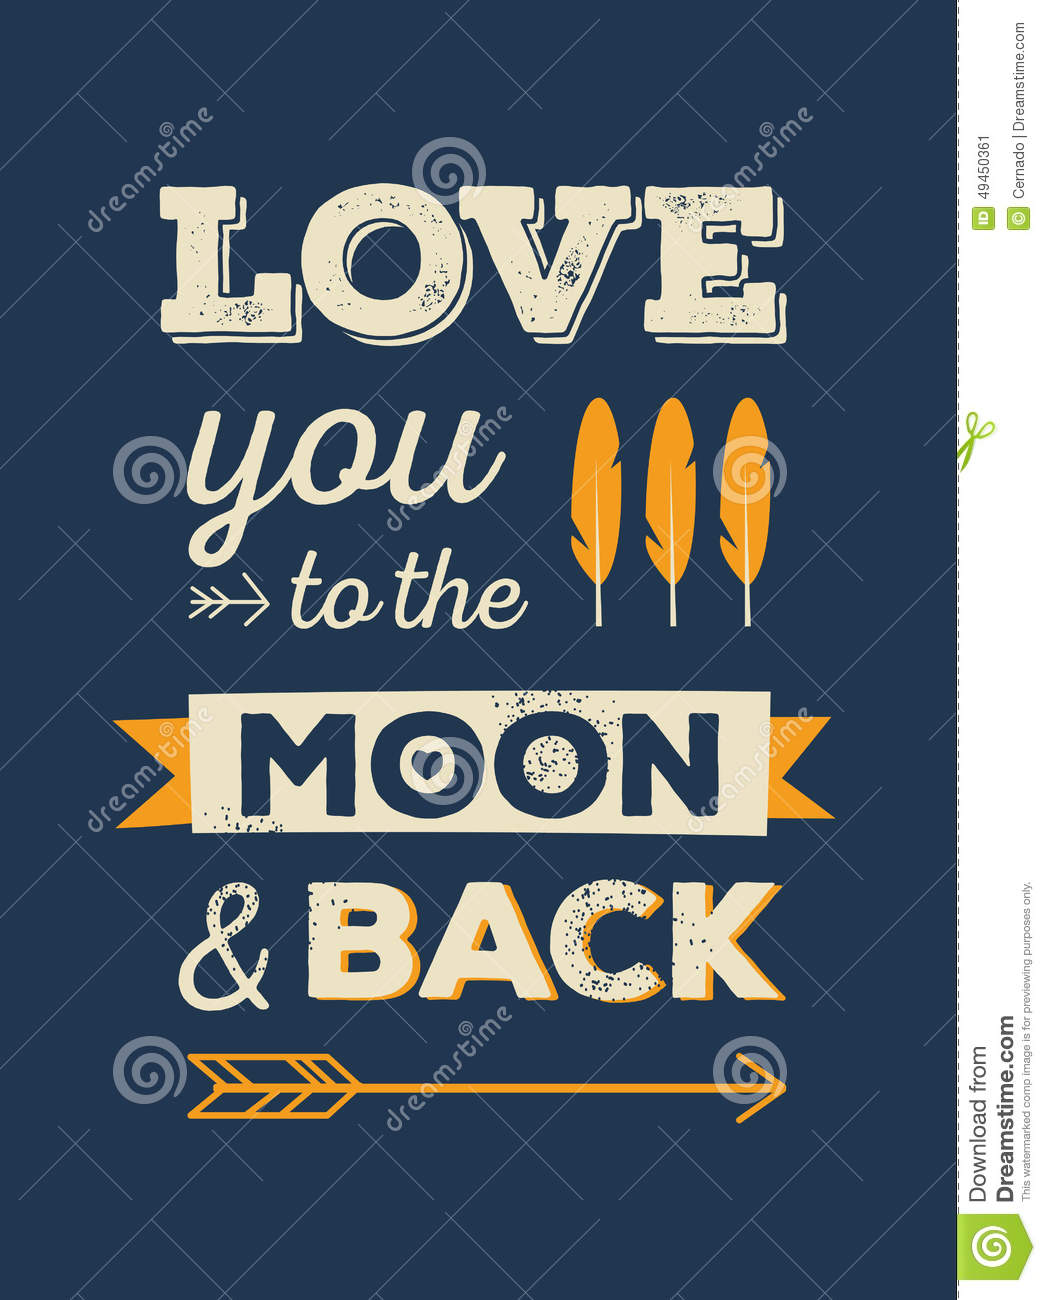 love you to the moon and back stock vector image 49450361. Black Bedroom Furniture Sets. Home Design Ideas